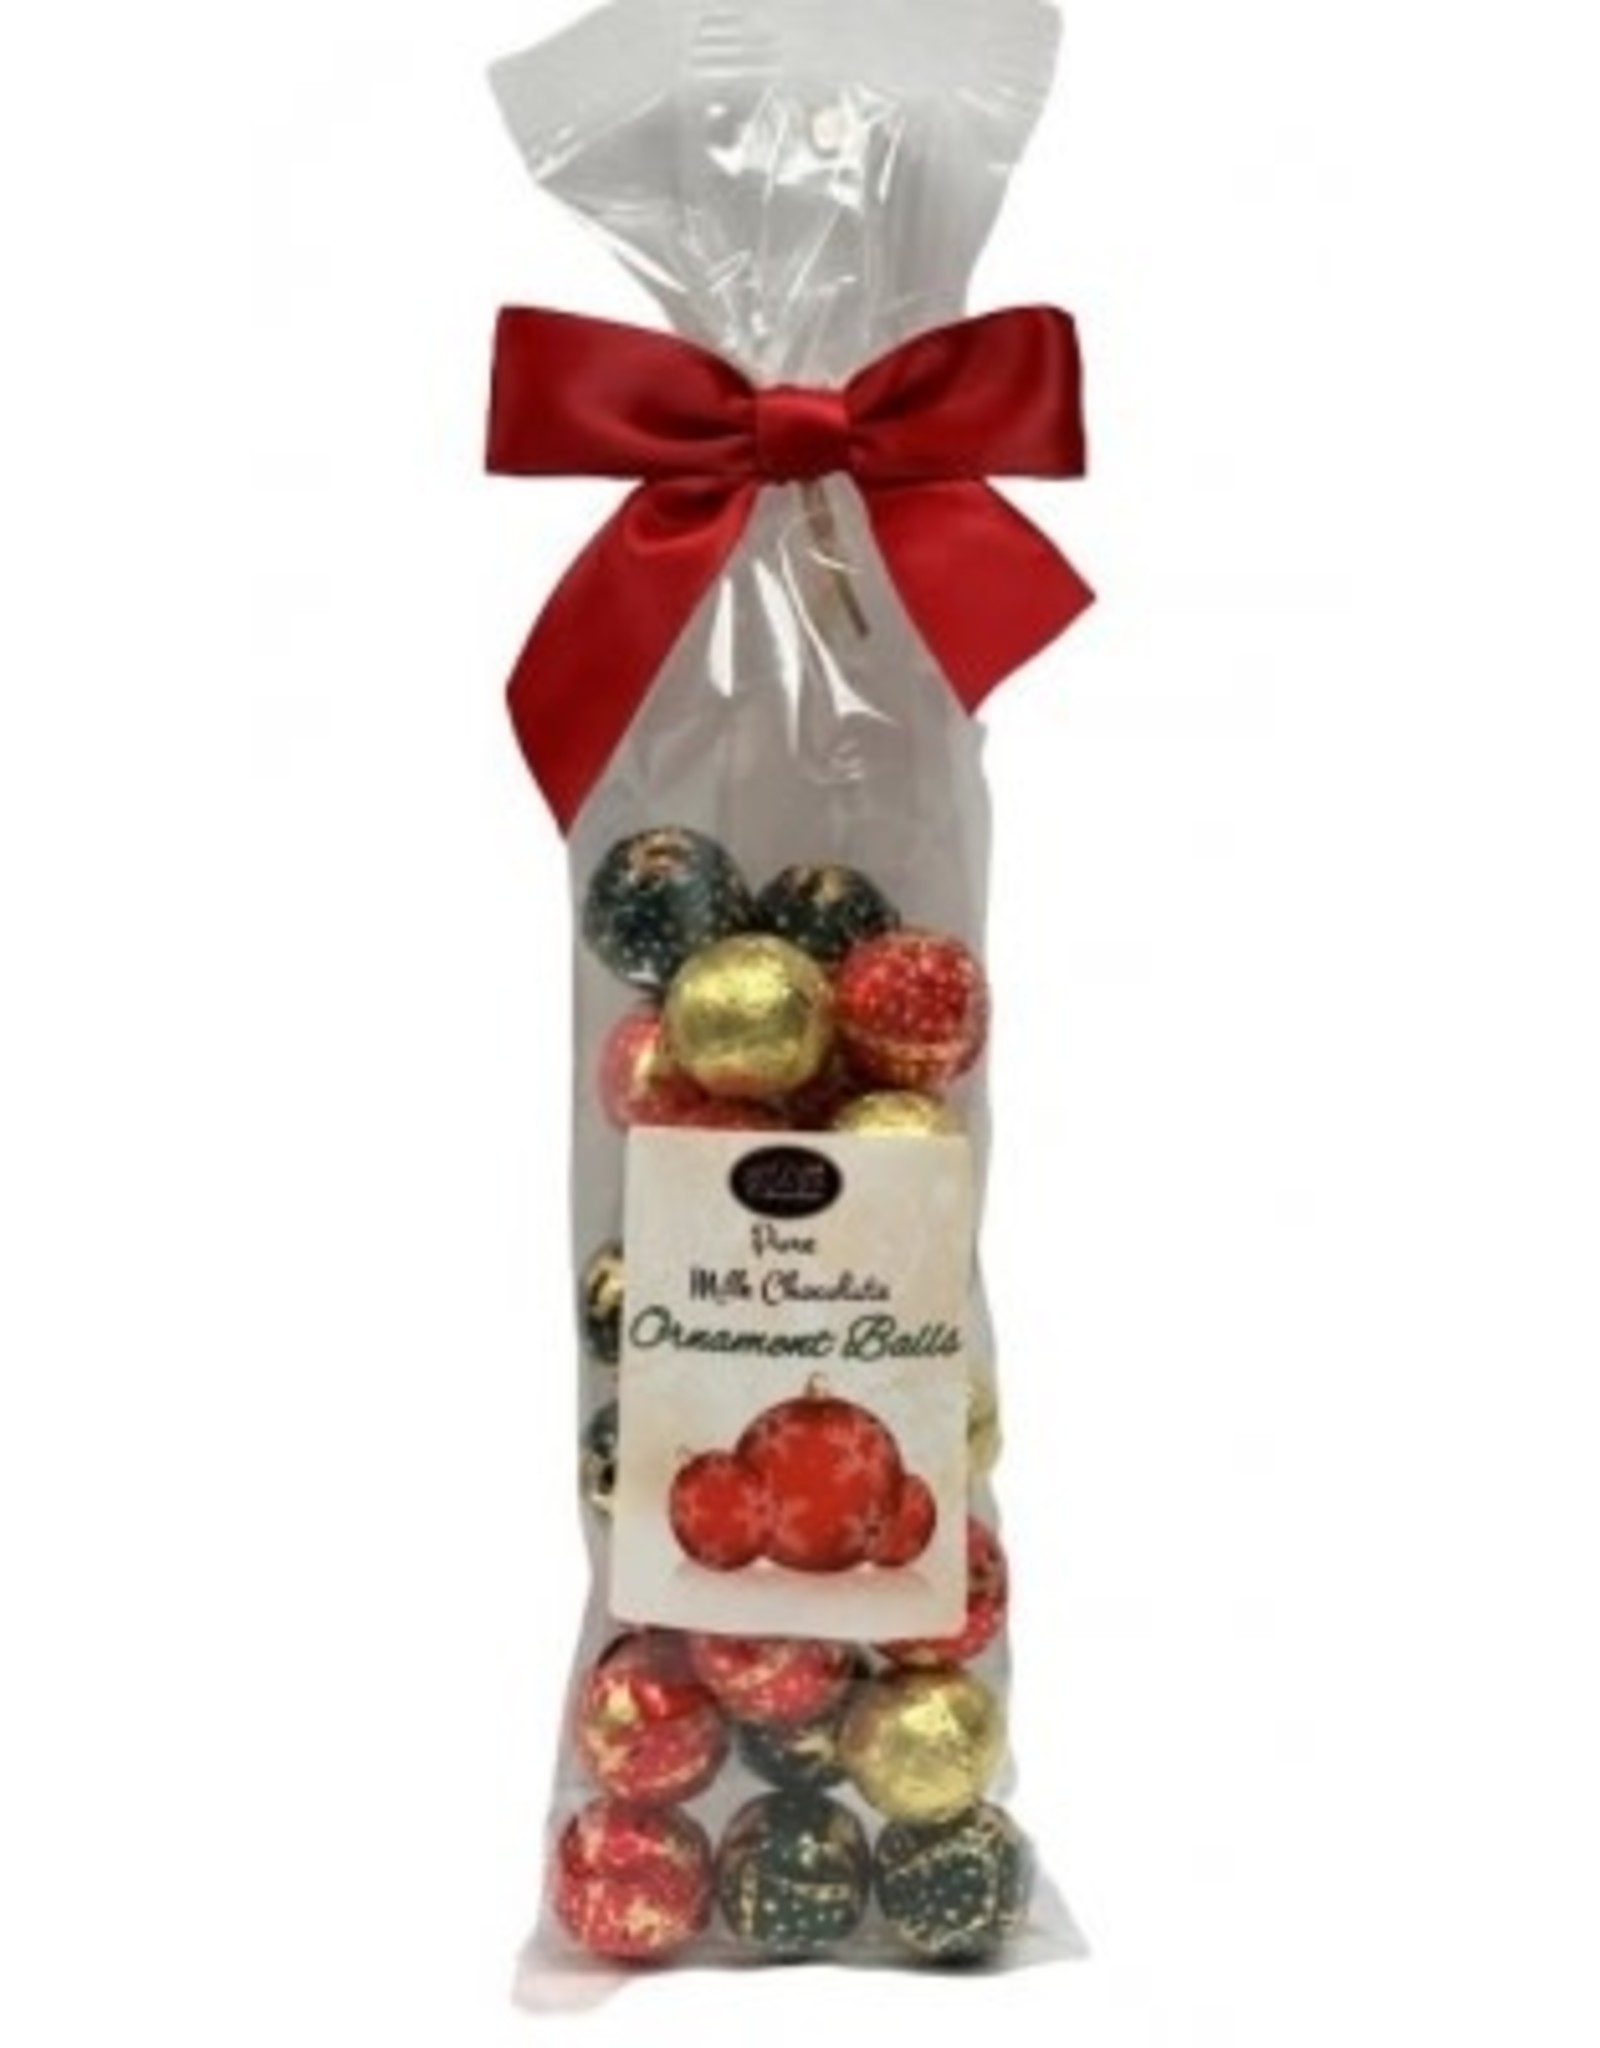 anDea Chocolates Milk Chocolate Ornaments Gift Bag, 170g